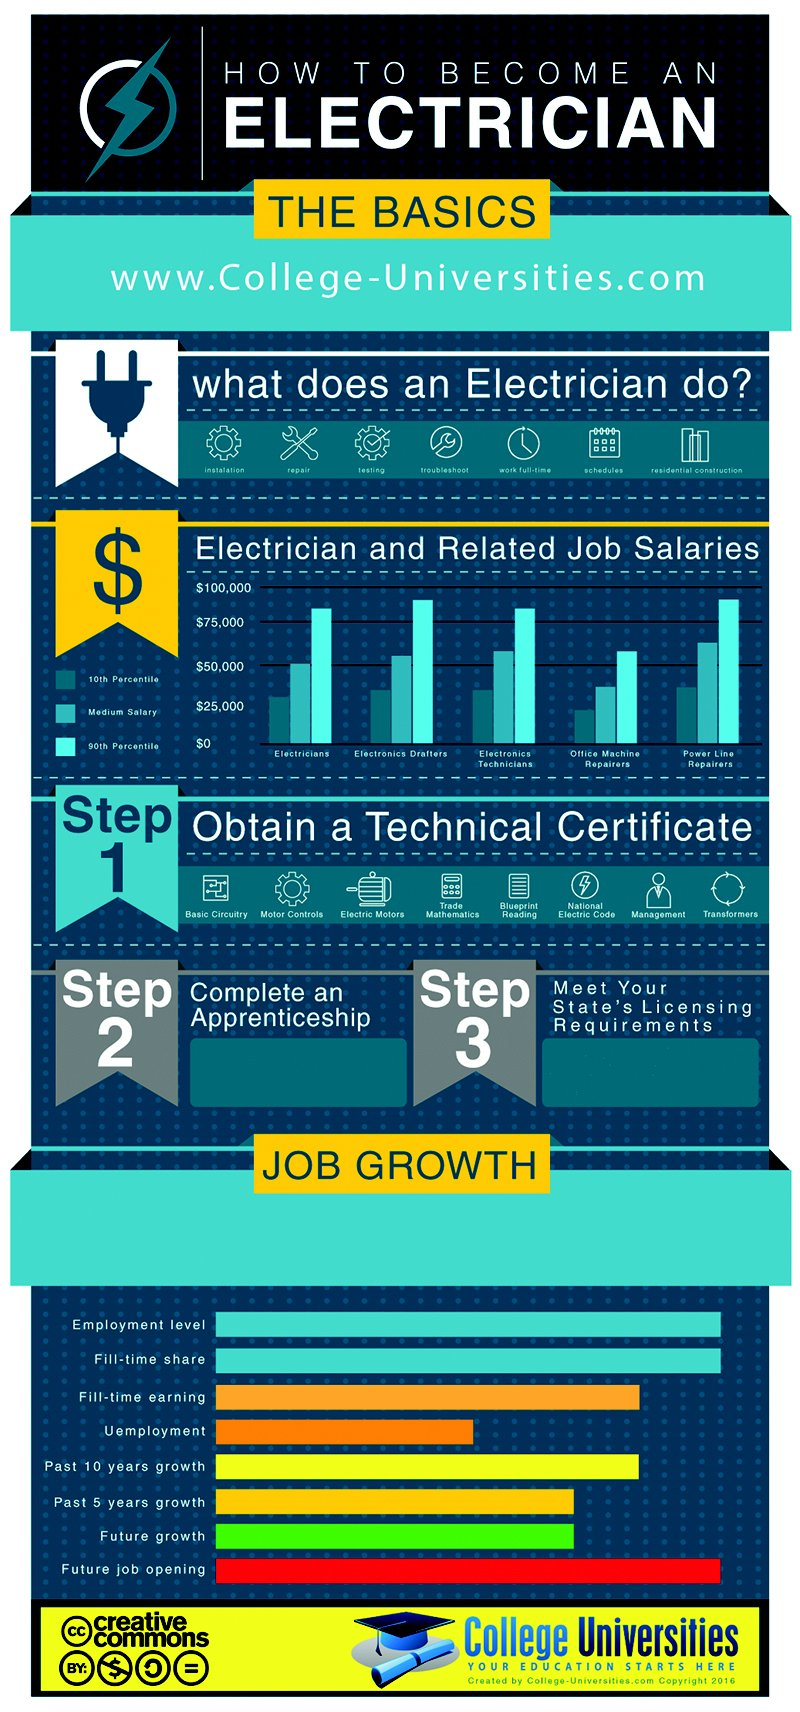 How to Become an Electrician Infographic